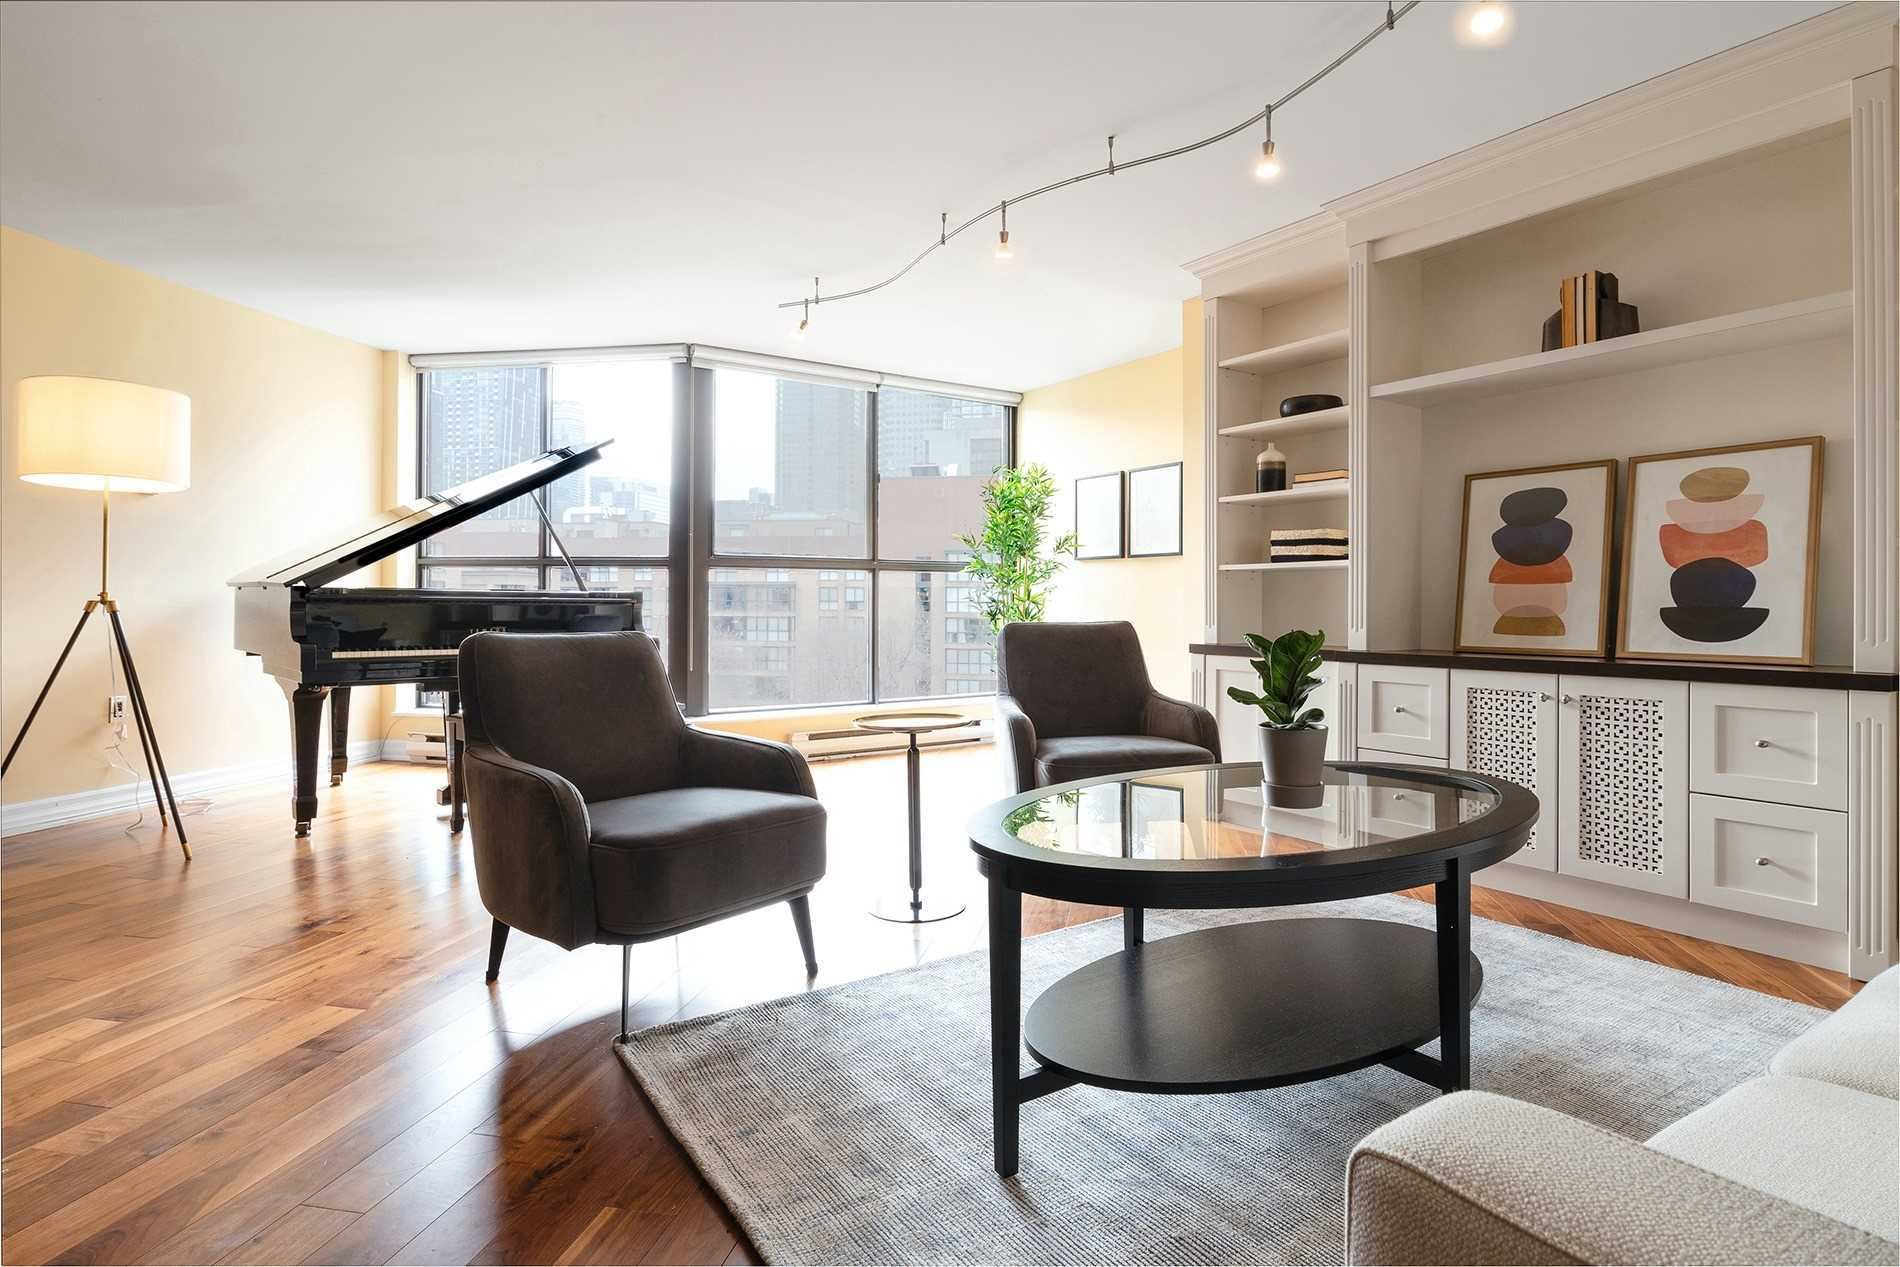 80 Front St, Toronto, Ontario M5E1T4, 2 Bedrooms Bedrooms, 5 Rooms Rooms,2 BathroomsBathrooms,Condo Apt,For Sale,Front,C5087018